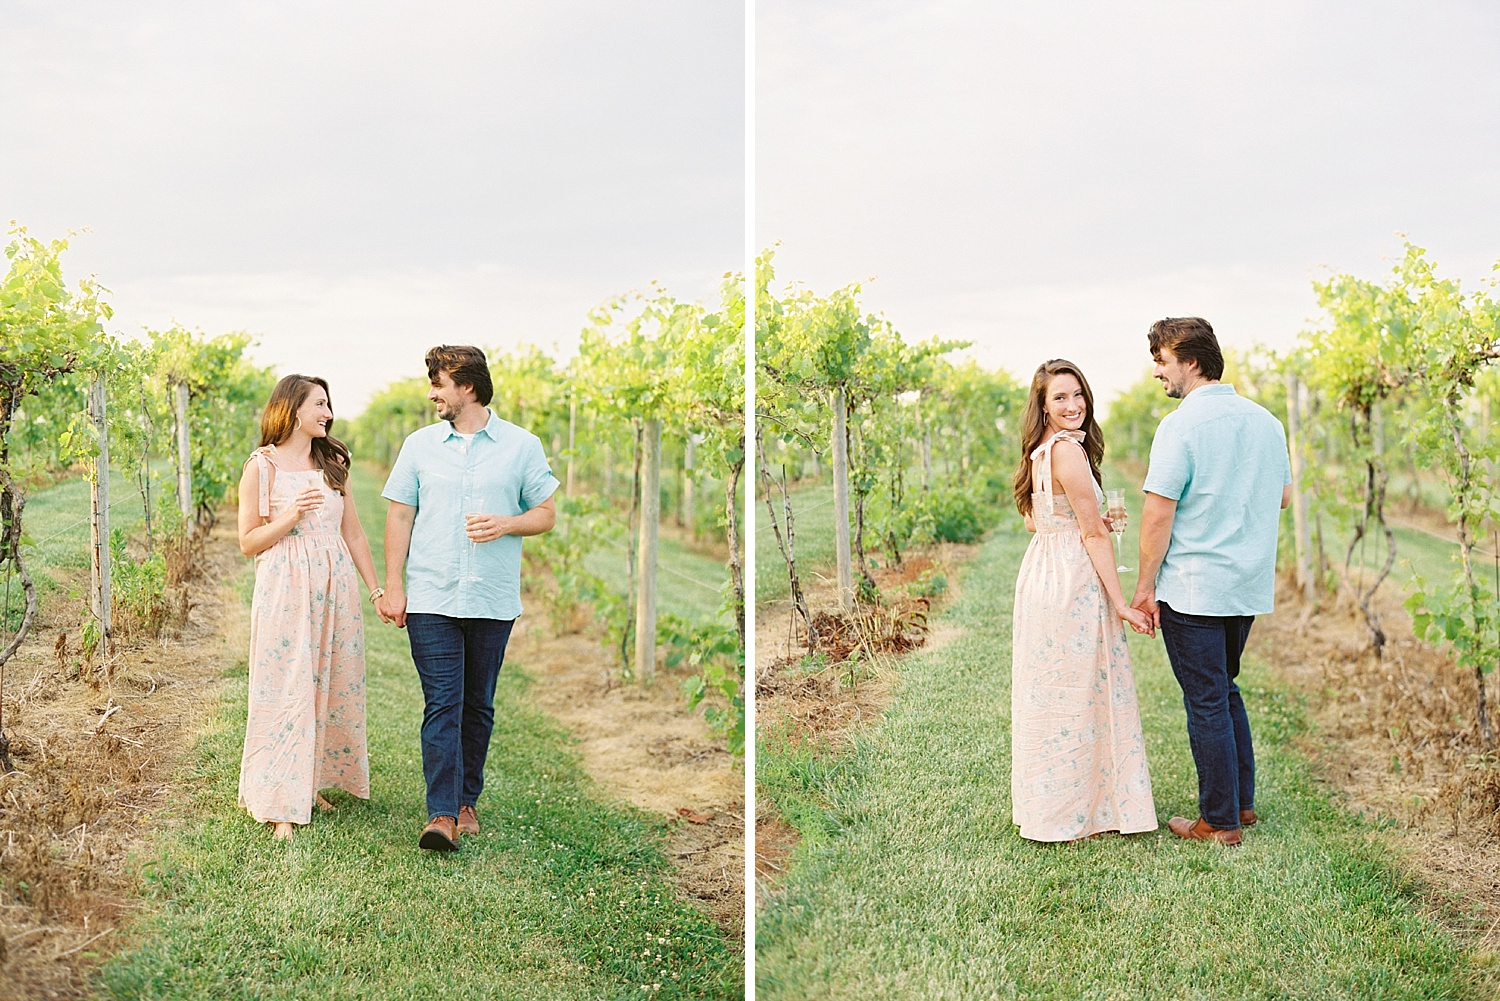 Downtown Lexington Engagement Session Talon Winery Picnic Engagement Session Gal Meets Glam Anthropologie Dress Laura Bodnar Photography Lexington Wedding Photographer Film Photography_0016-1.jpg